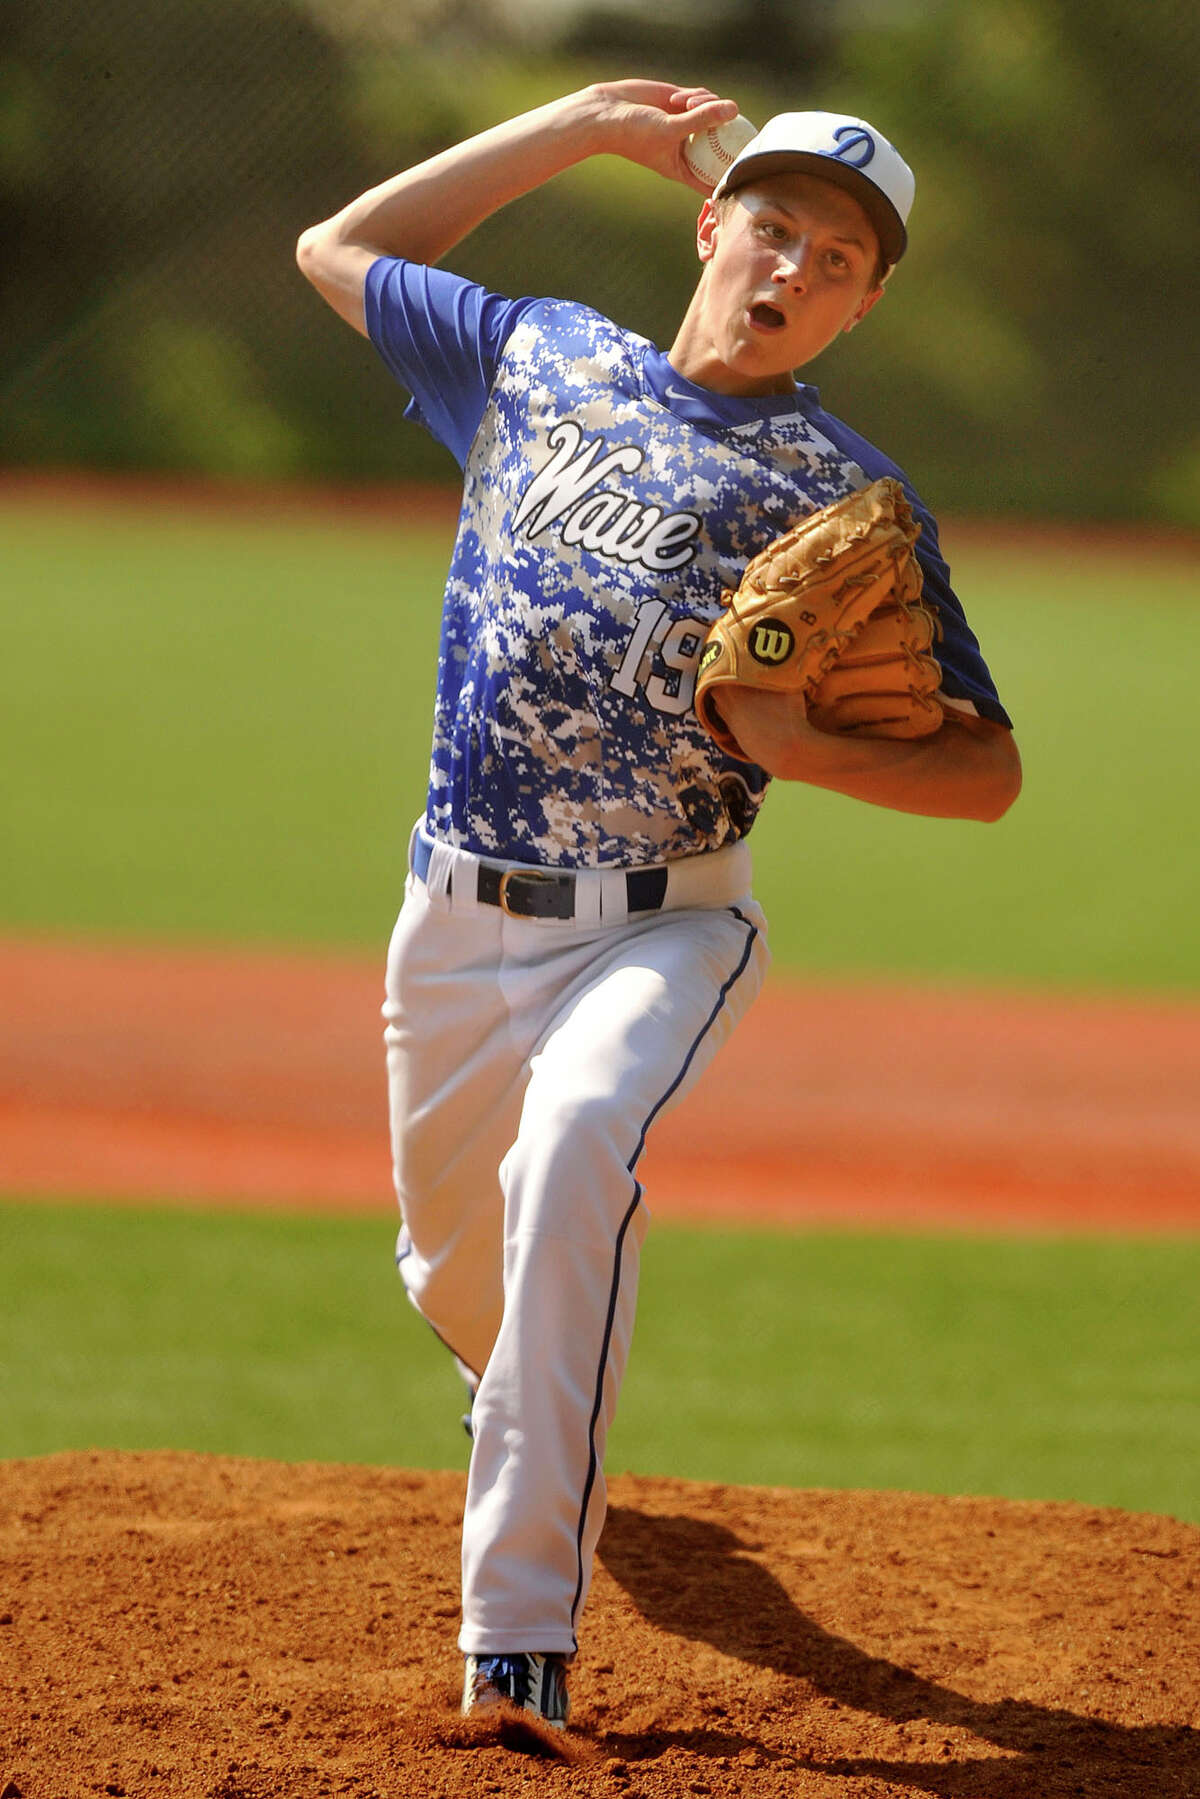 Stephen Barston, Darien Barston pitched to contact, trusting his defense but he did not walk many and he led the Blue Wave to the No. 1 seed in the FCIAC playoffs.